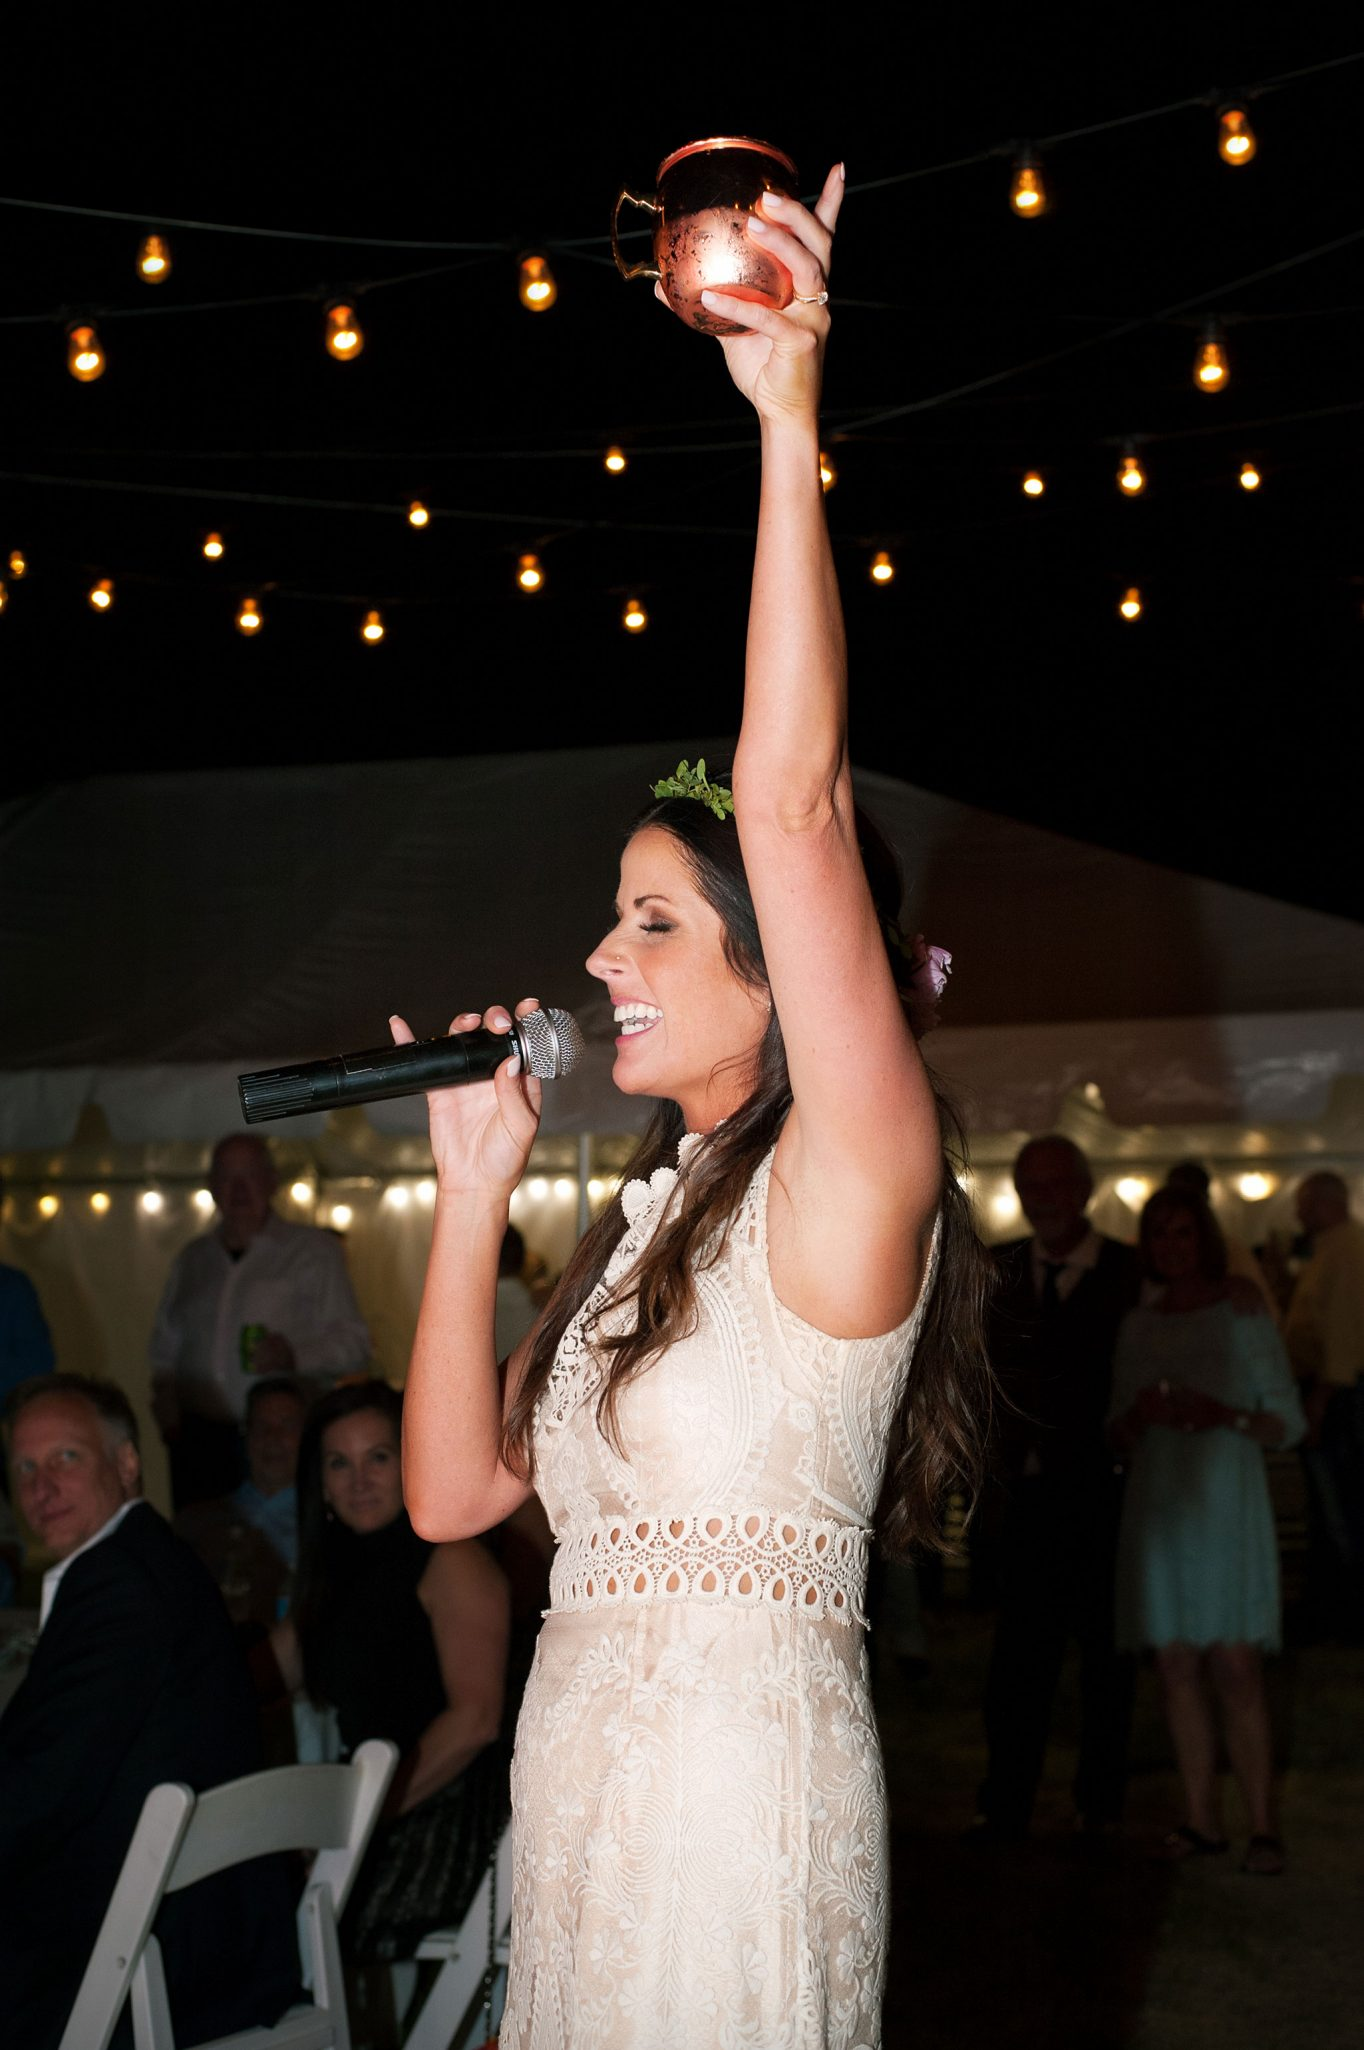 Happy, singing bride with microphone